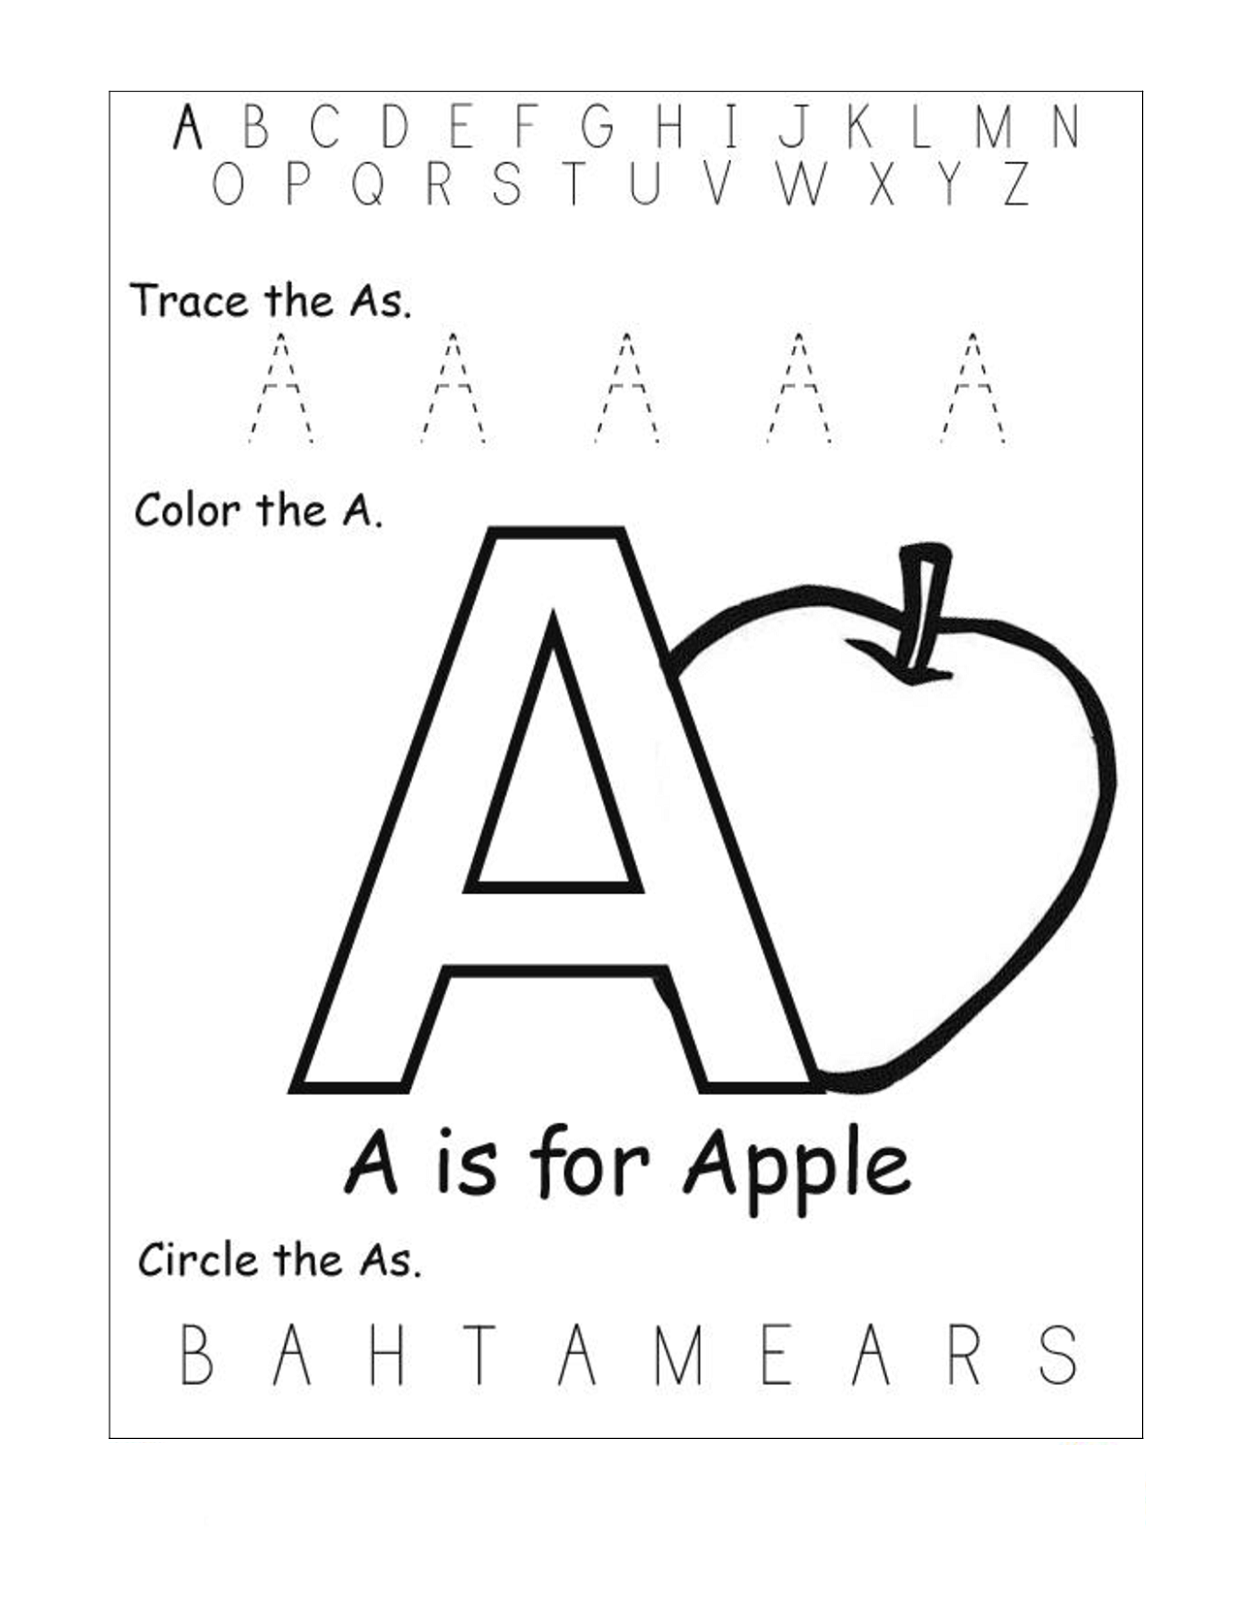 Printables Abc Worksheets For Pre-k free abc worksheets for pre k activity shelter letter a